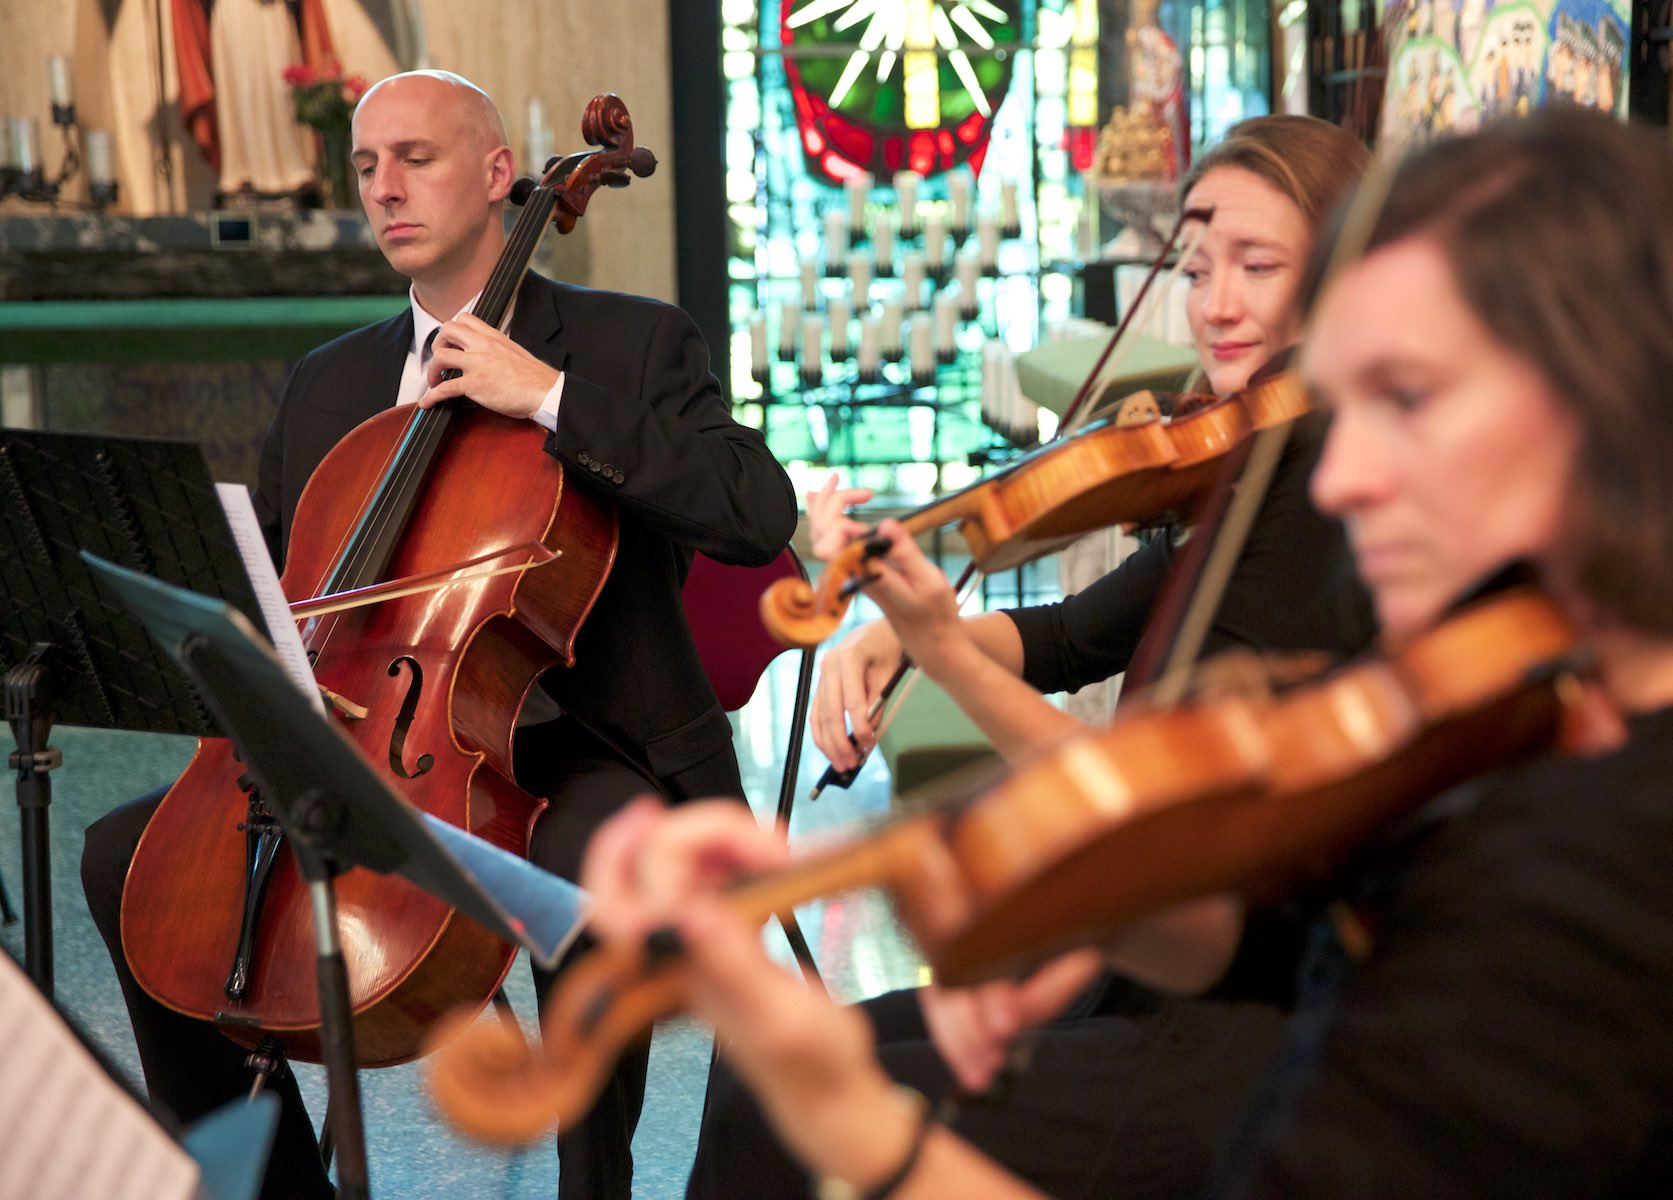 Musicians fill St. Rita of Cascia Shrine Chapel in Chicago with wedding music before the ceremony. Wedding photography by Steve & Tiffany Warmowski